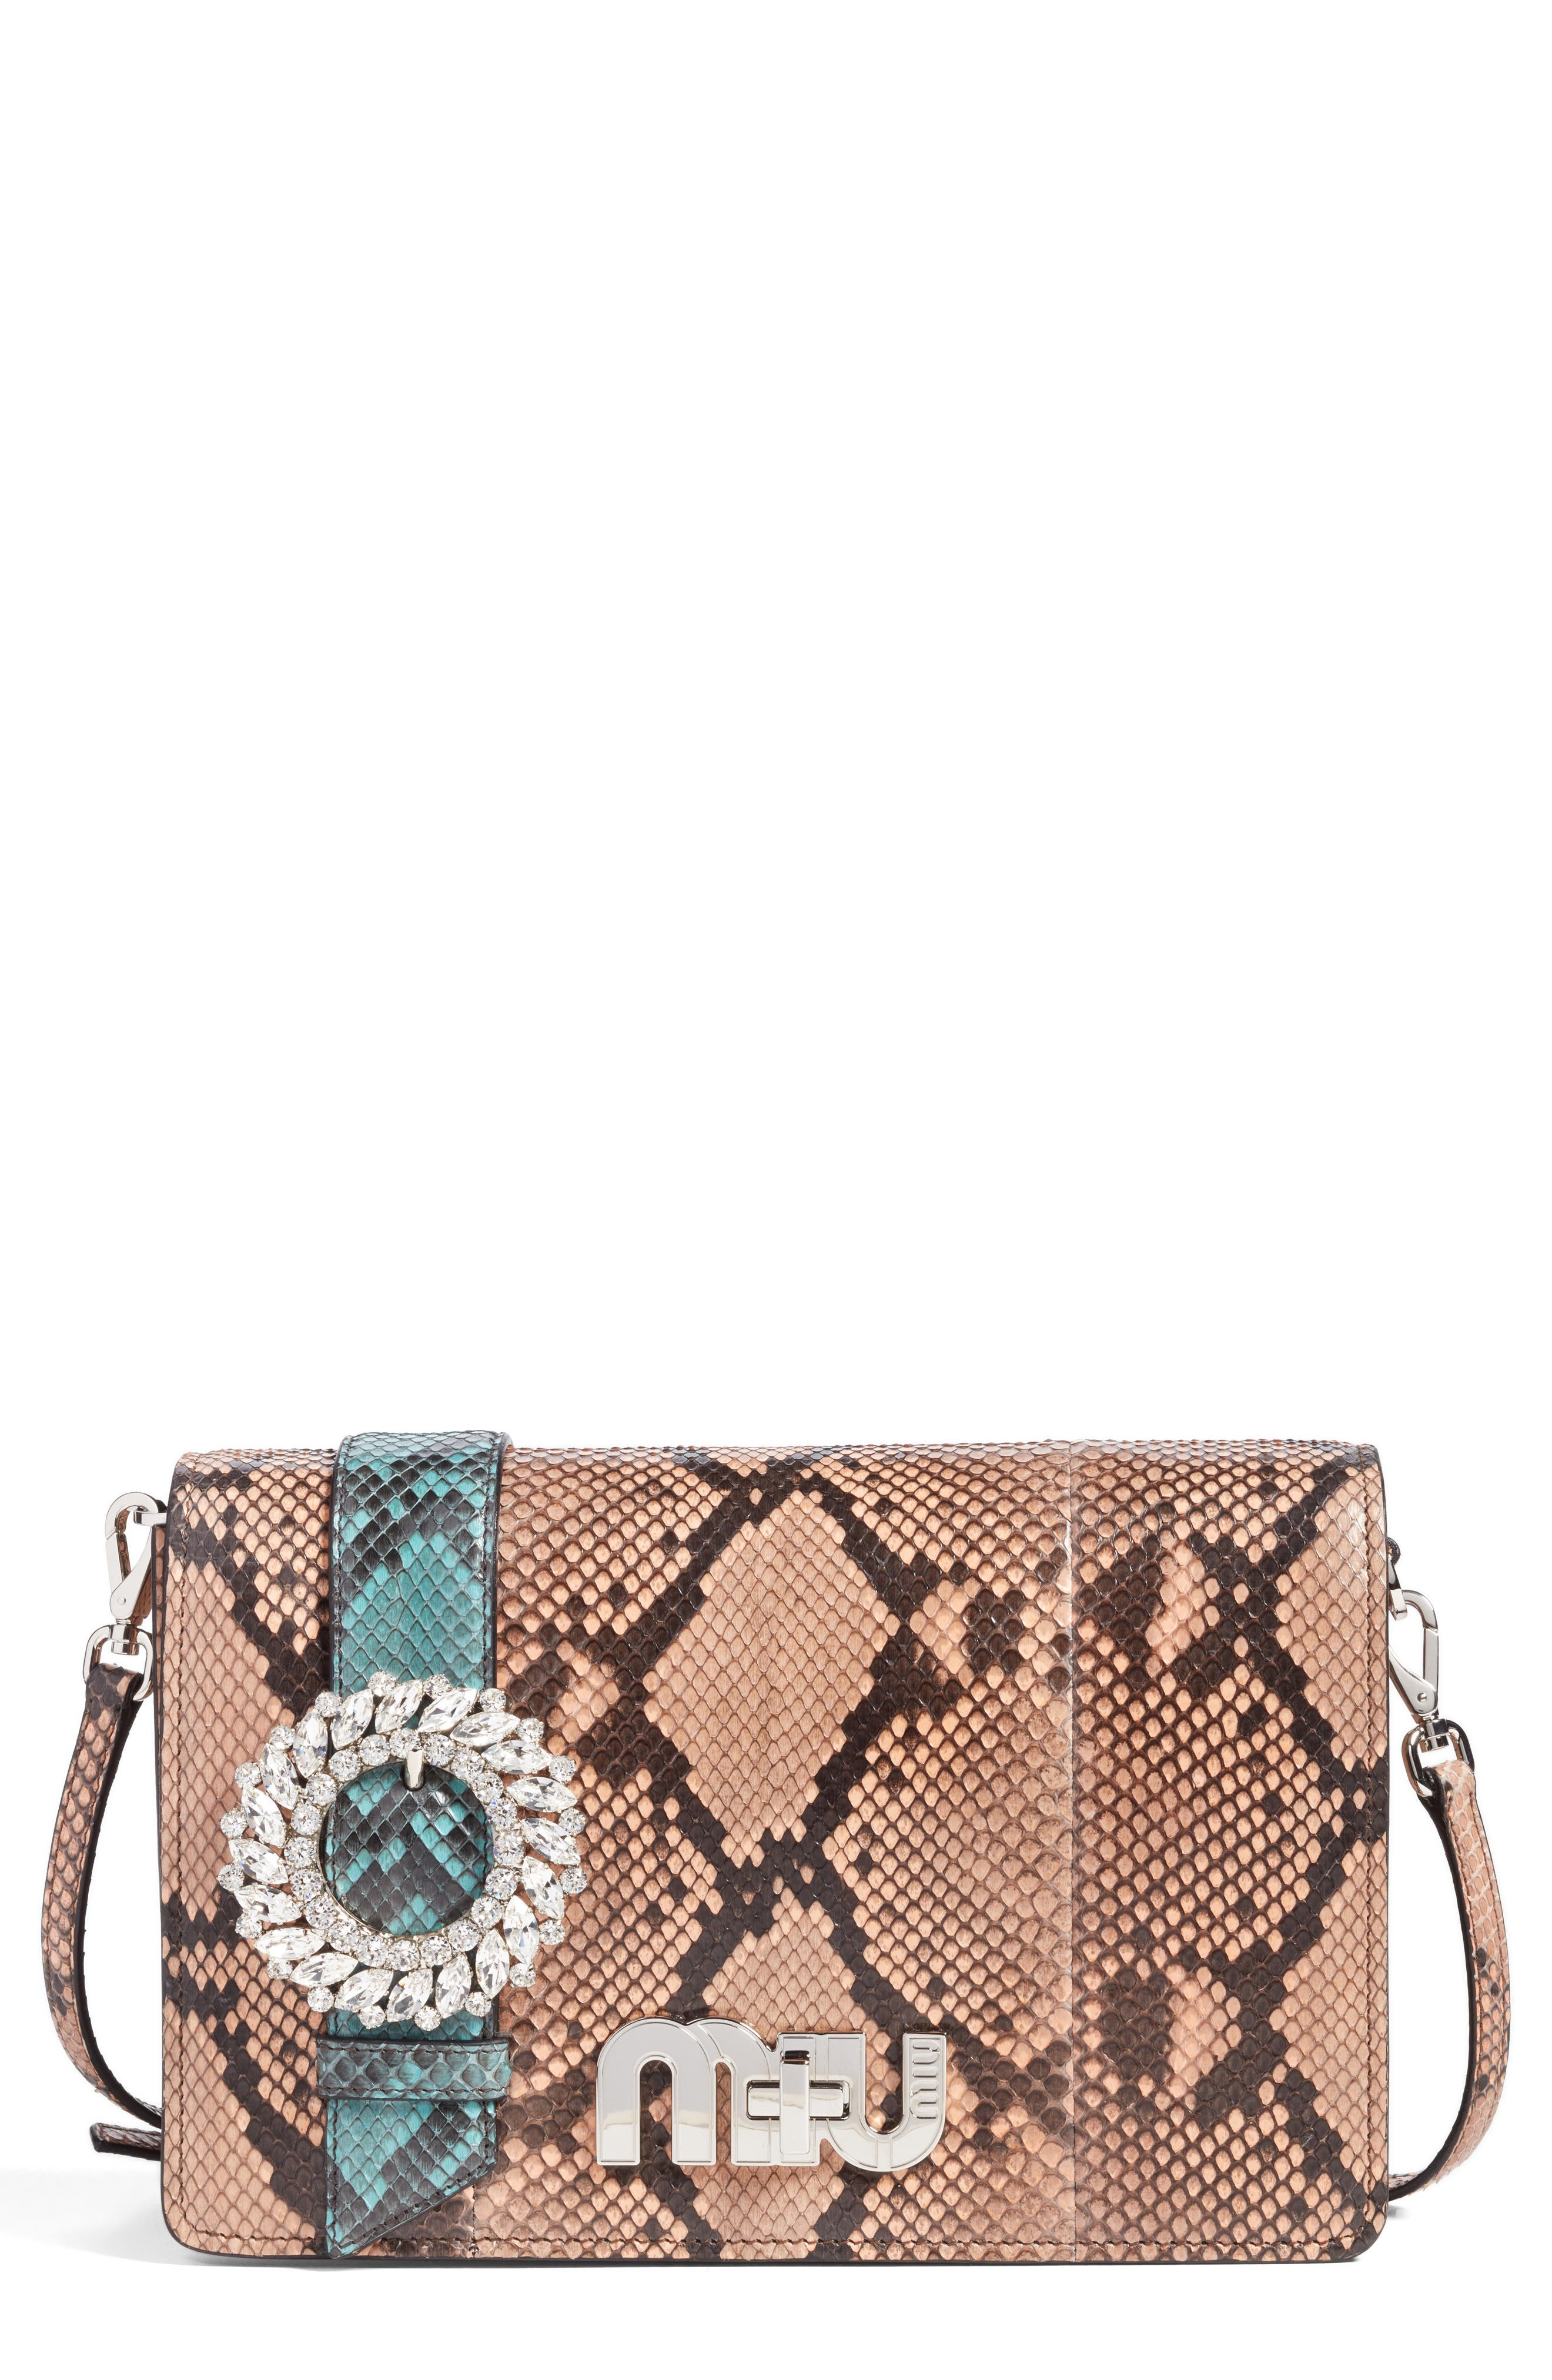 Miu Miu Genuine Python Shoulder Bag